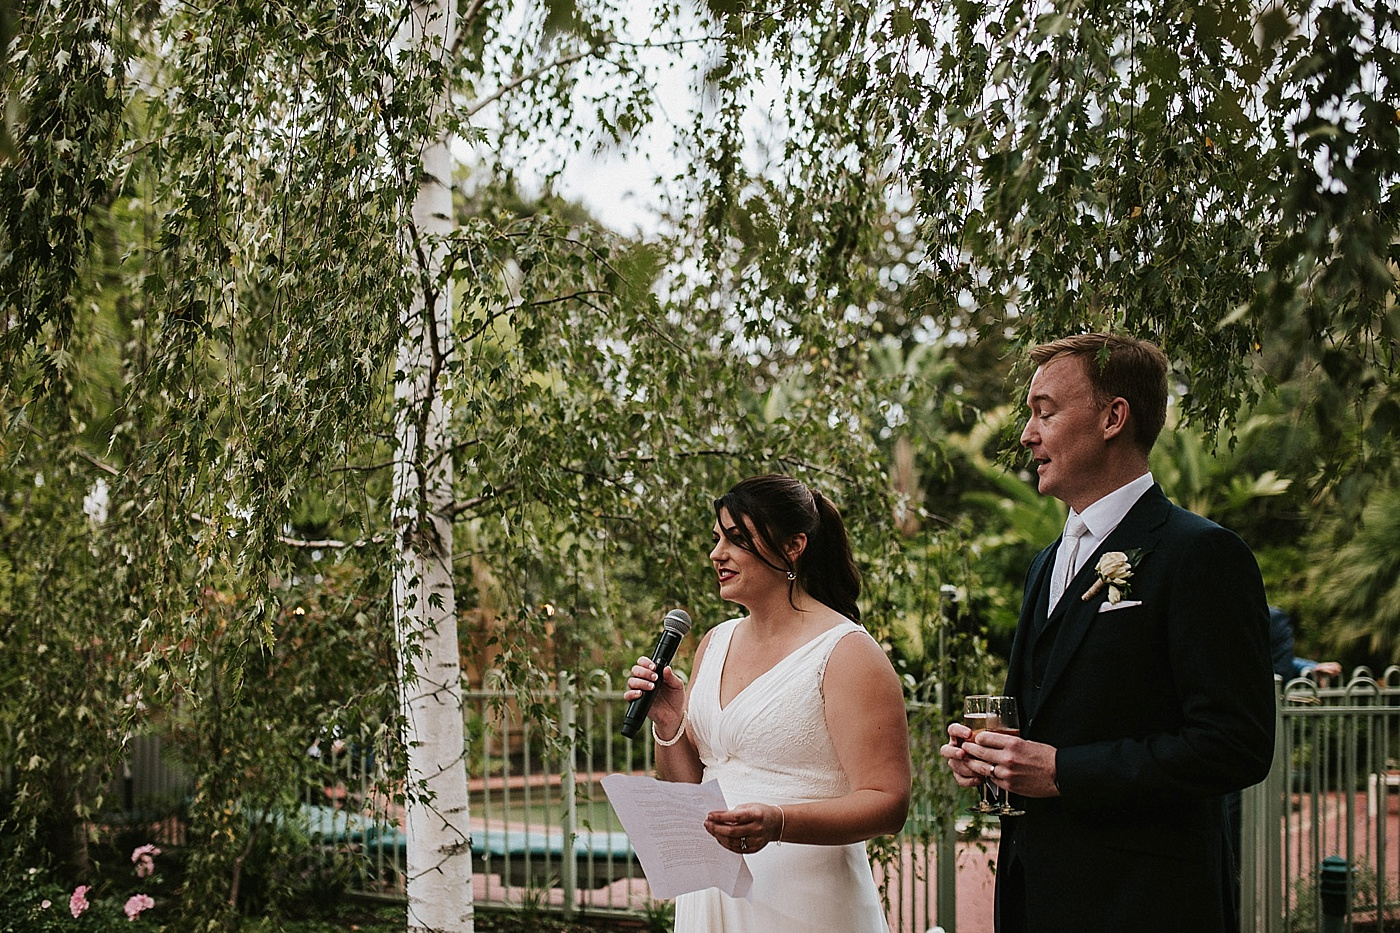 Brooke&David_Melbourne-Quirky-Relaxed-Fun-Casual-Backyard-Wedding_Melbourne-Wedding-Photography-80